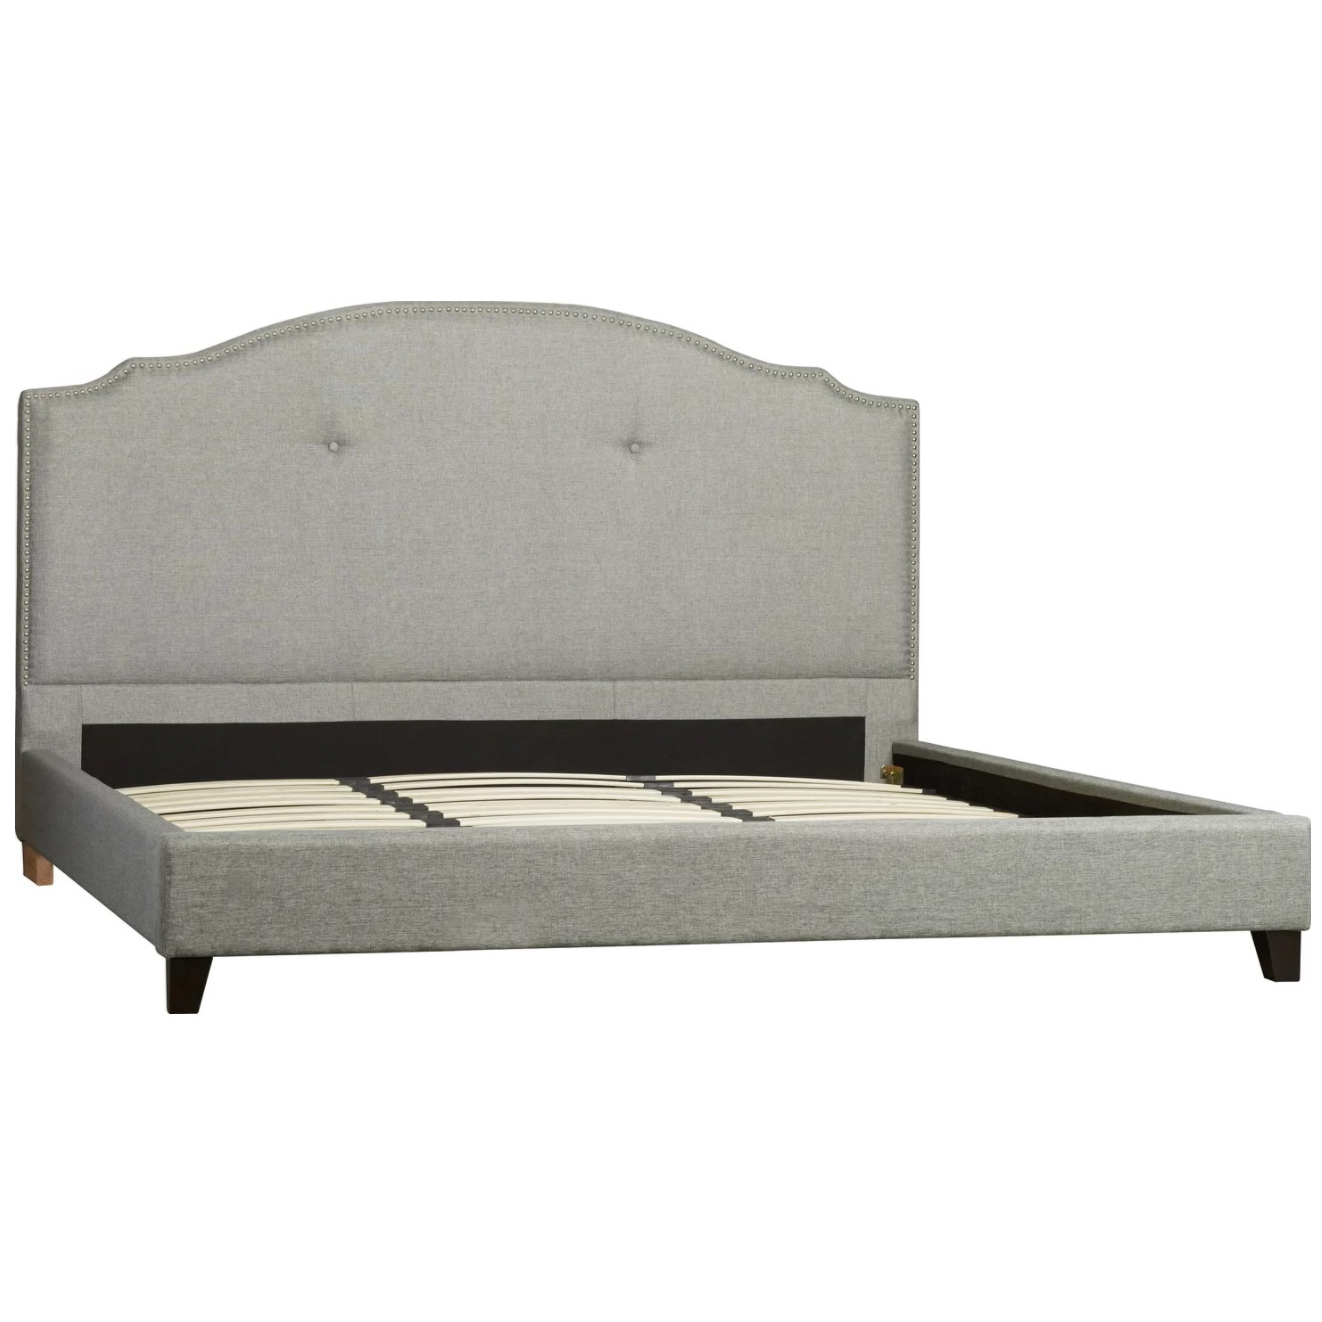 NEW Grey Portland Linen Bed Frame Rawson & Co Beds | eBay